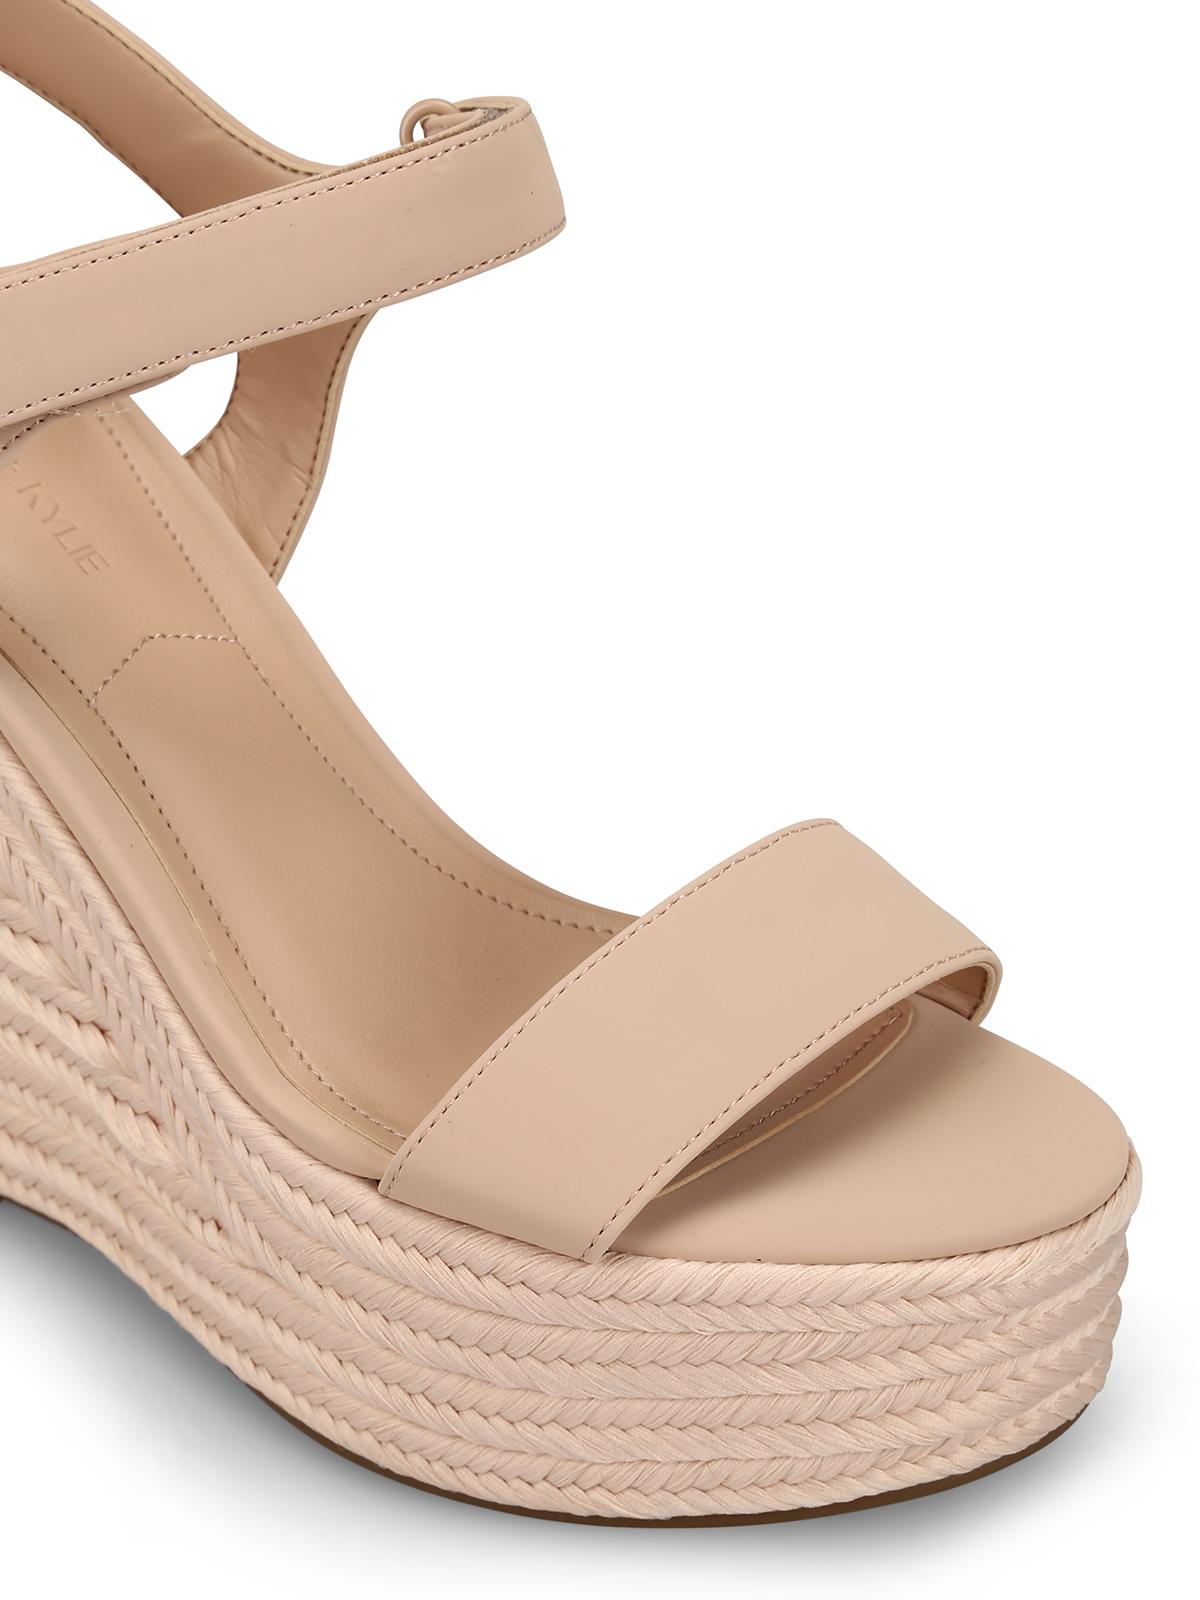 d6ec60b519 iKRIX Kendall + Kylie: sandals - Grand pink leather wedge sandals